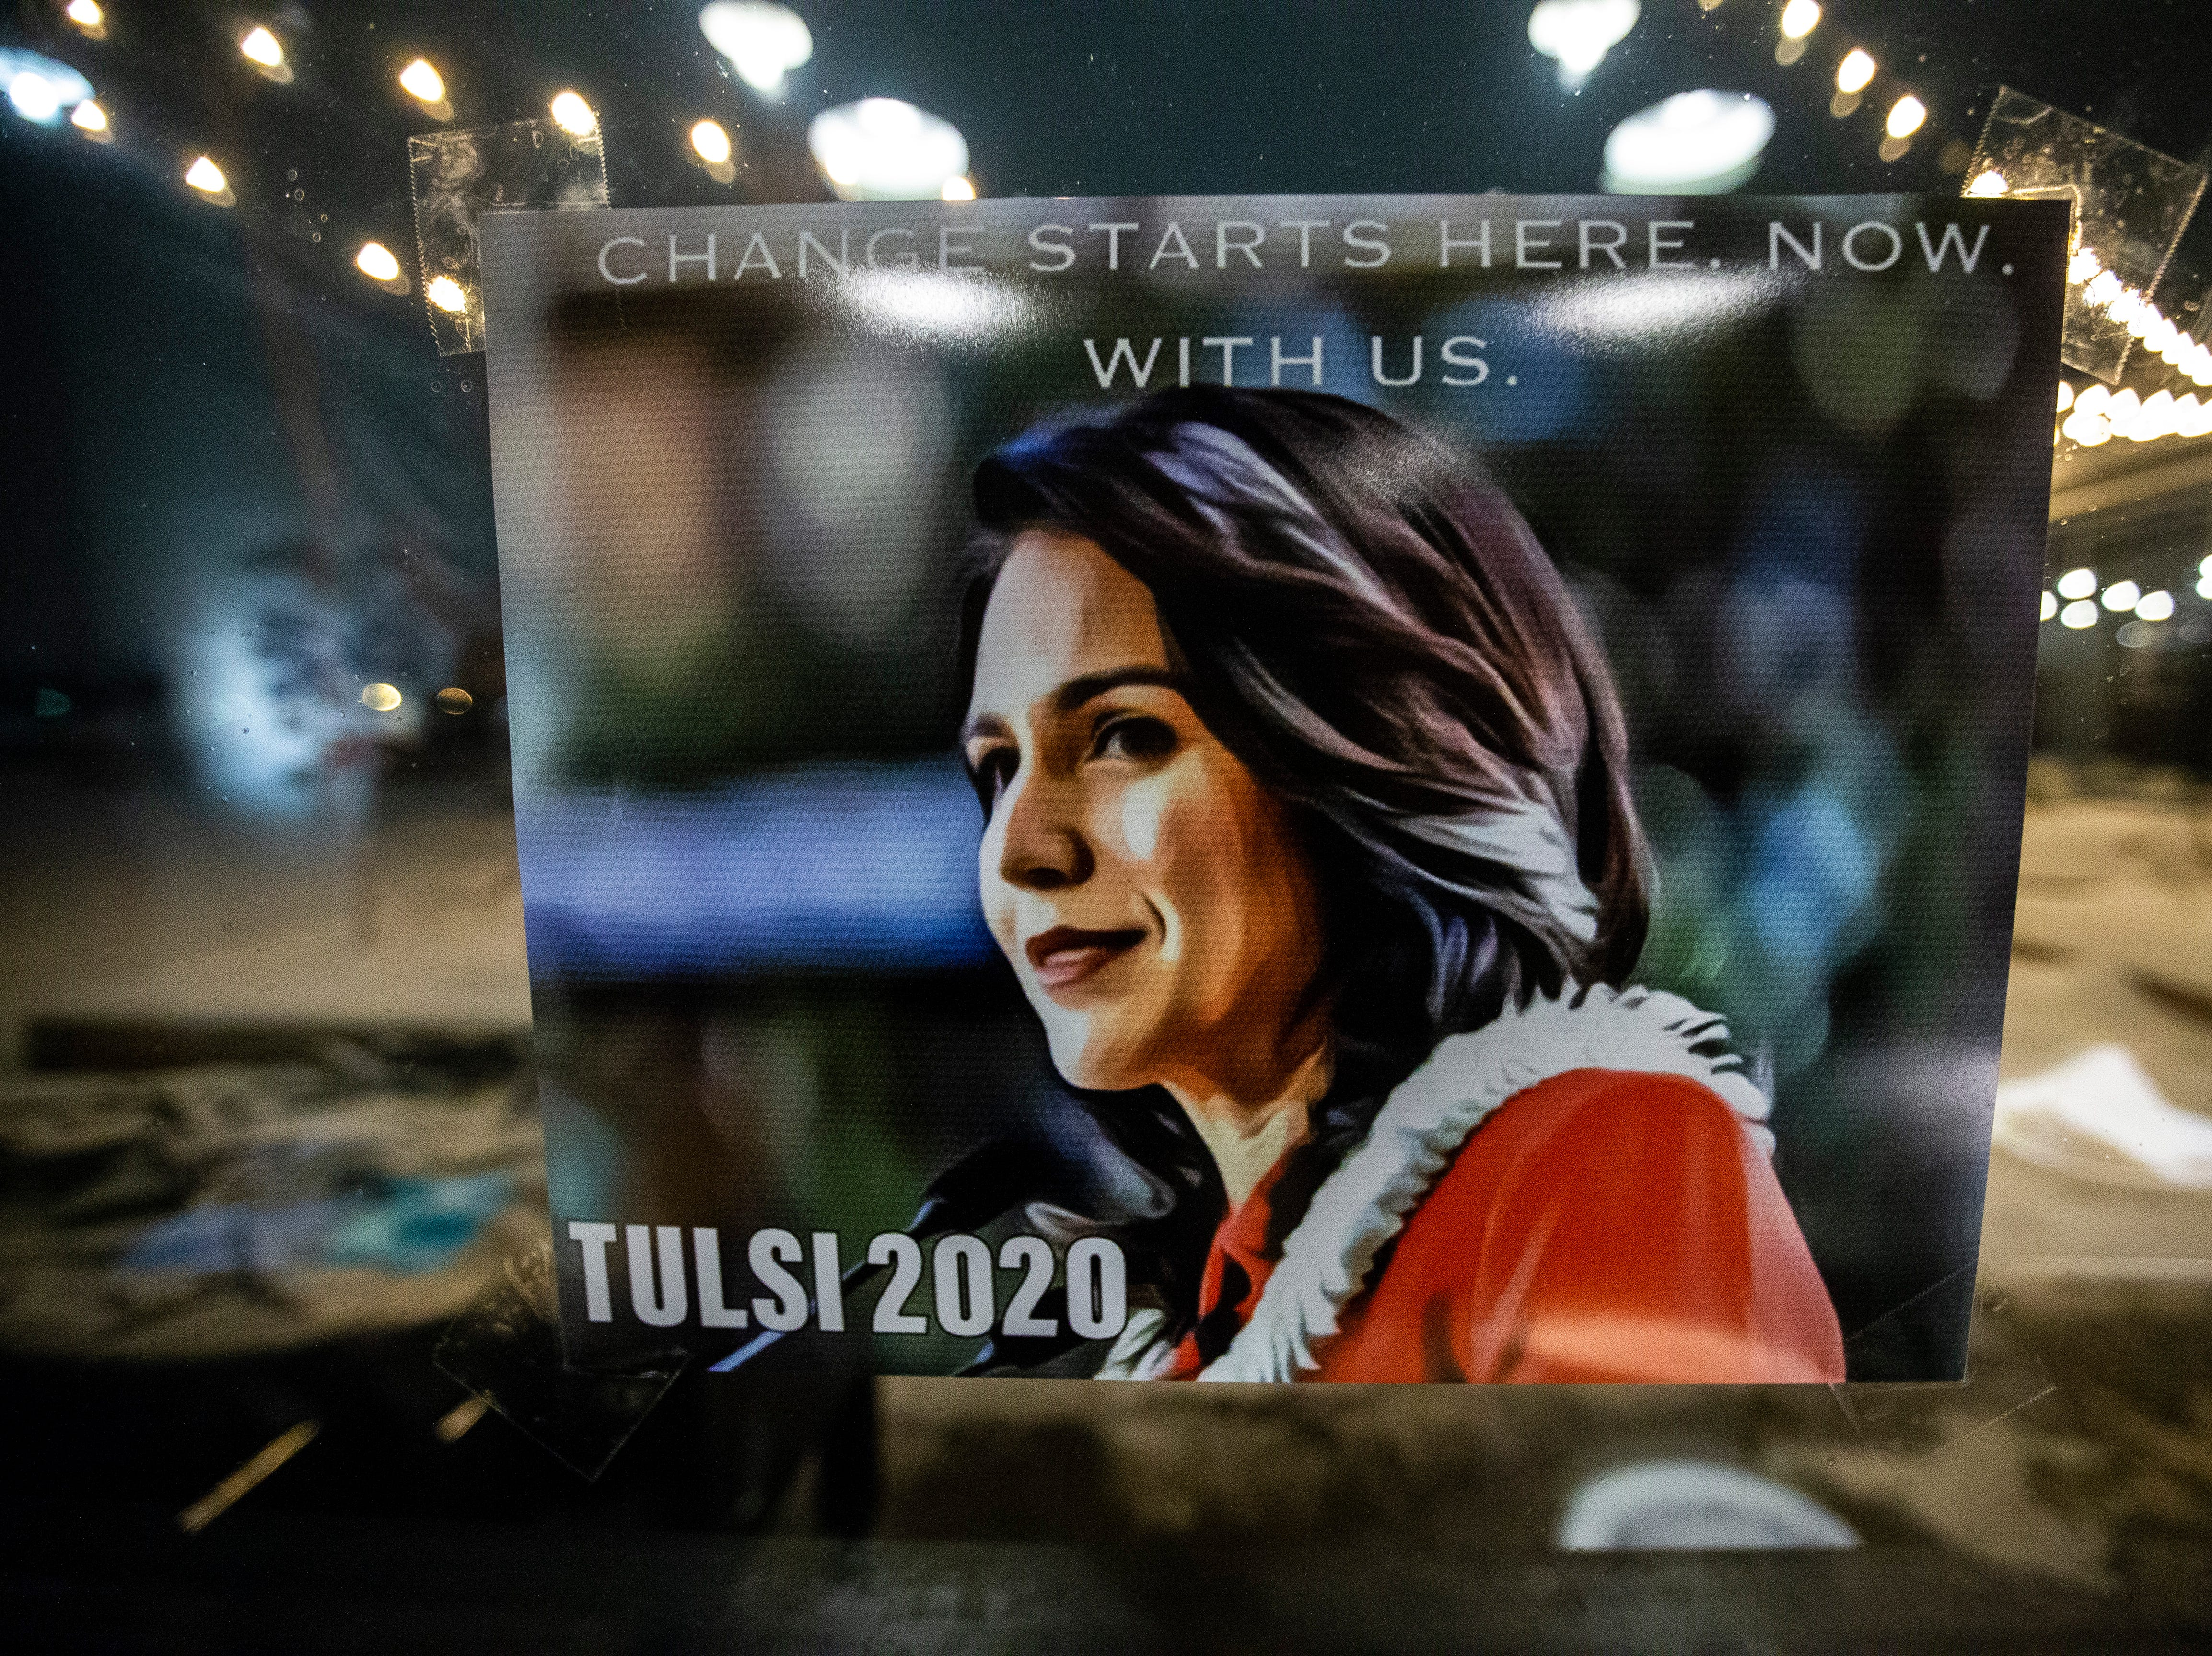 A sign hangs on a window as snow falls outside during an event U.S. Rep. Tulsi Gabbard, D-Hawaii, on her first trip to Iowa since declaring her intent to run for president on Monday, Feb. 11, 2019 at Big Grove Brewery in Iowa City.